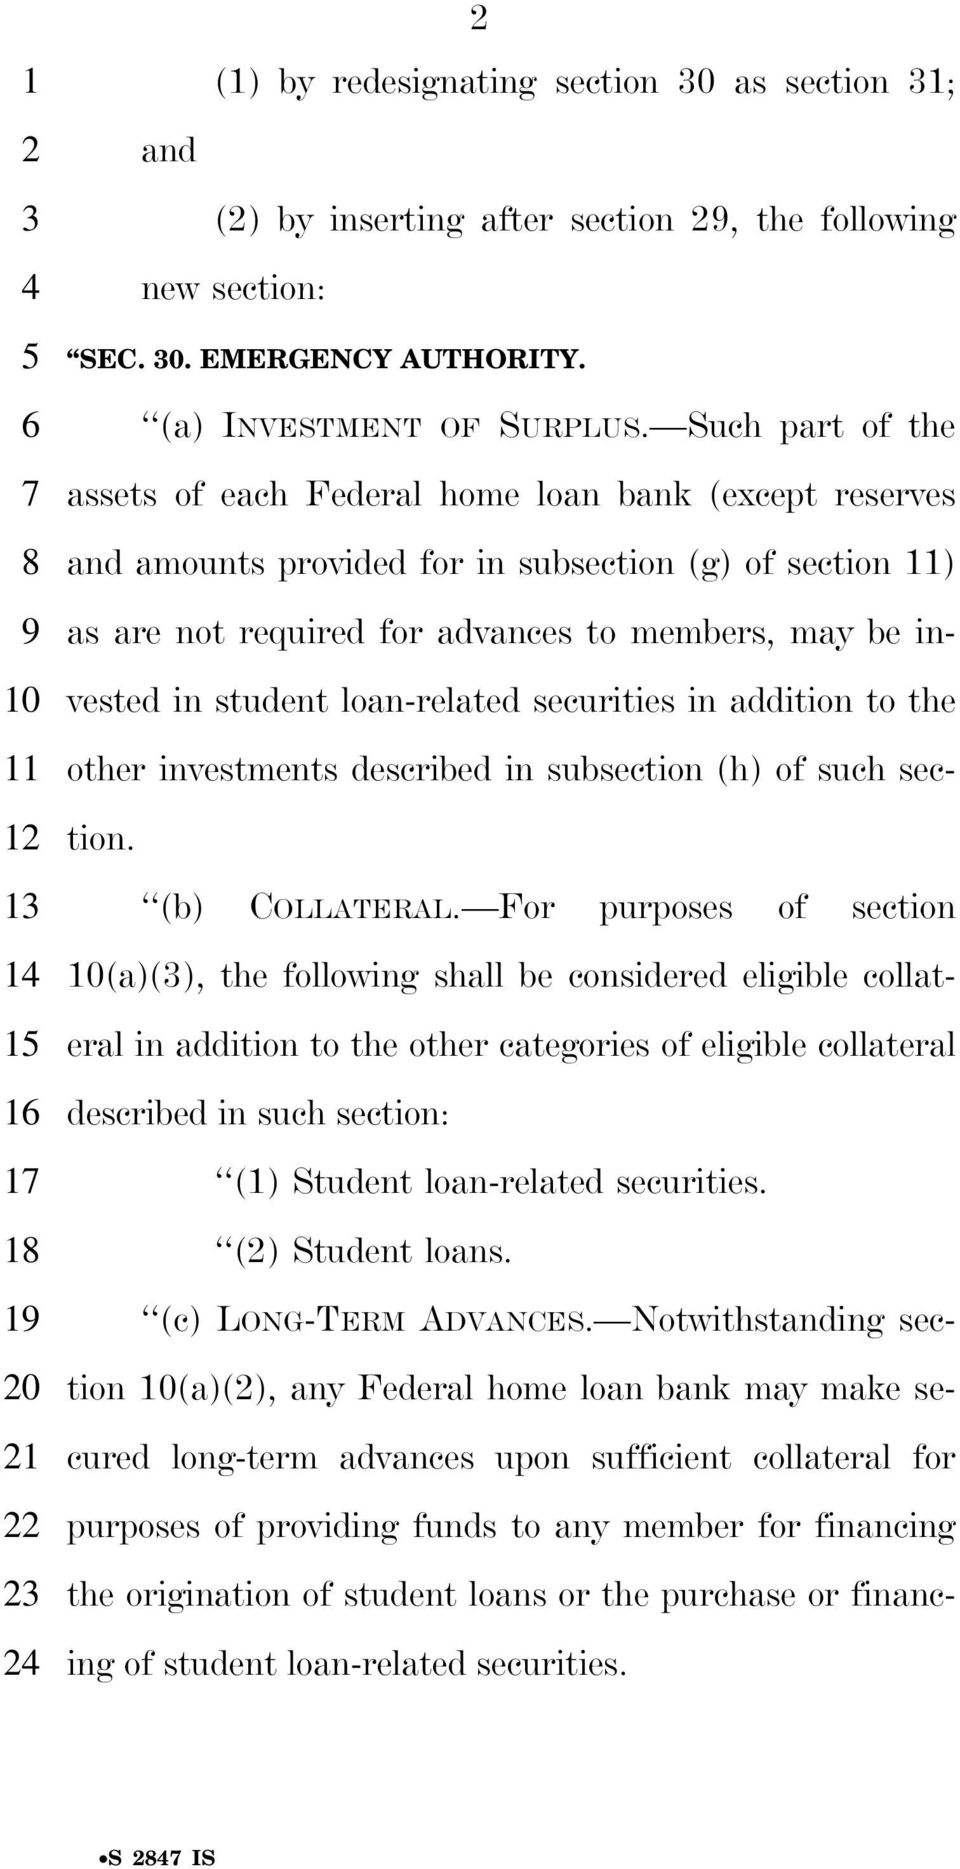 loan-related securities in addition to the other investments described in subsection (h) of such section. (b) COLLATERAL.